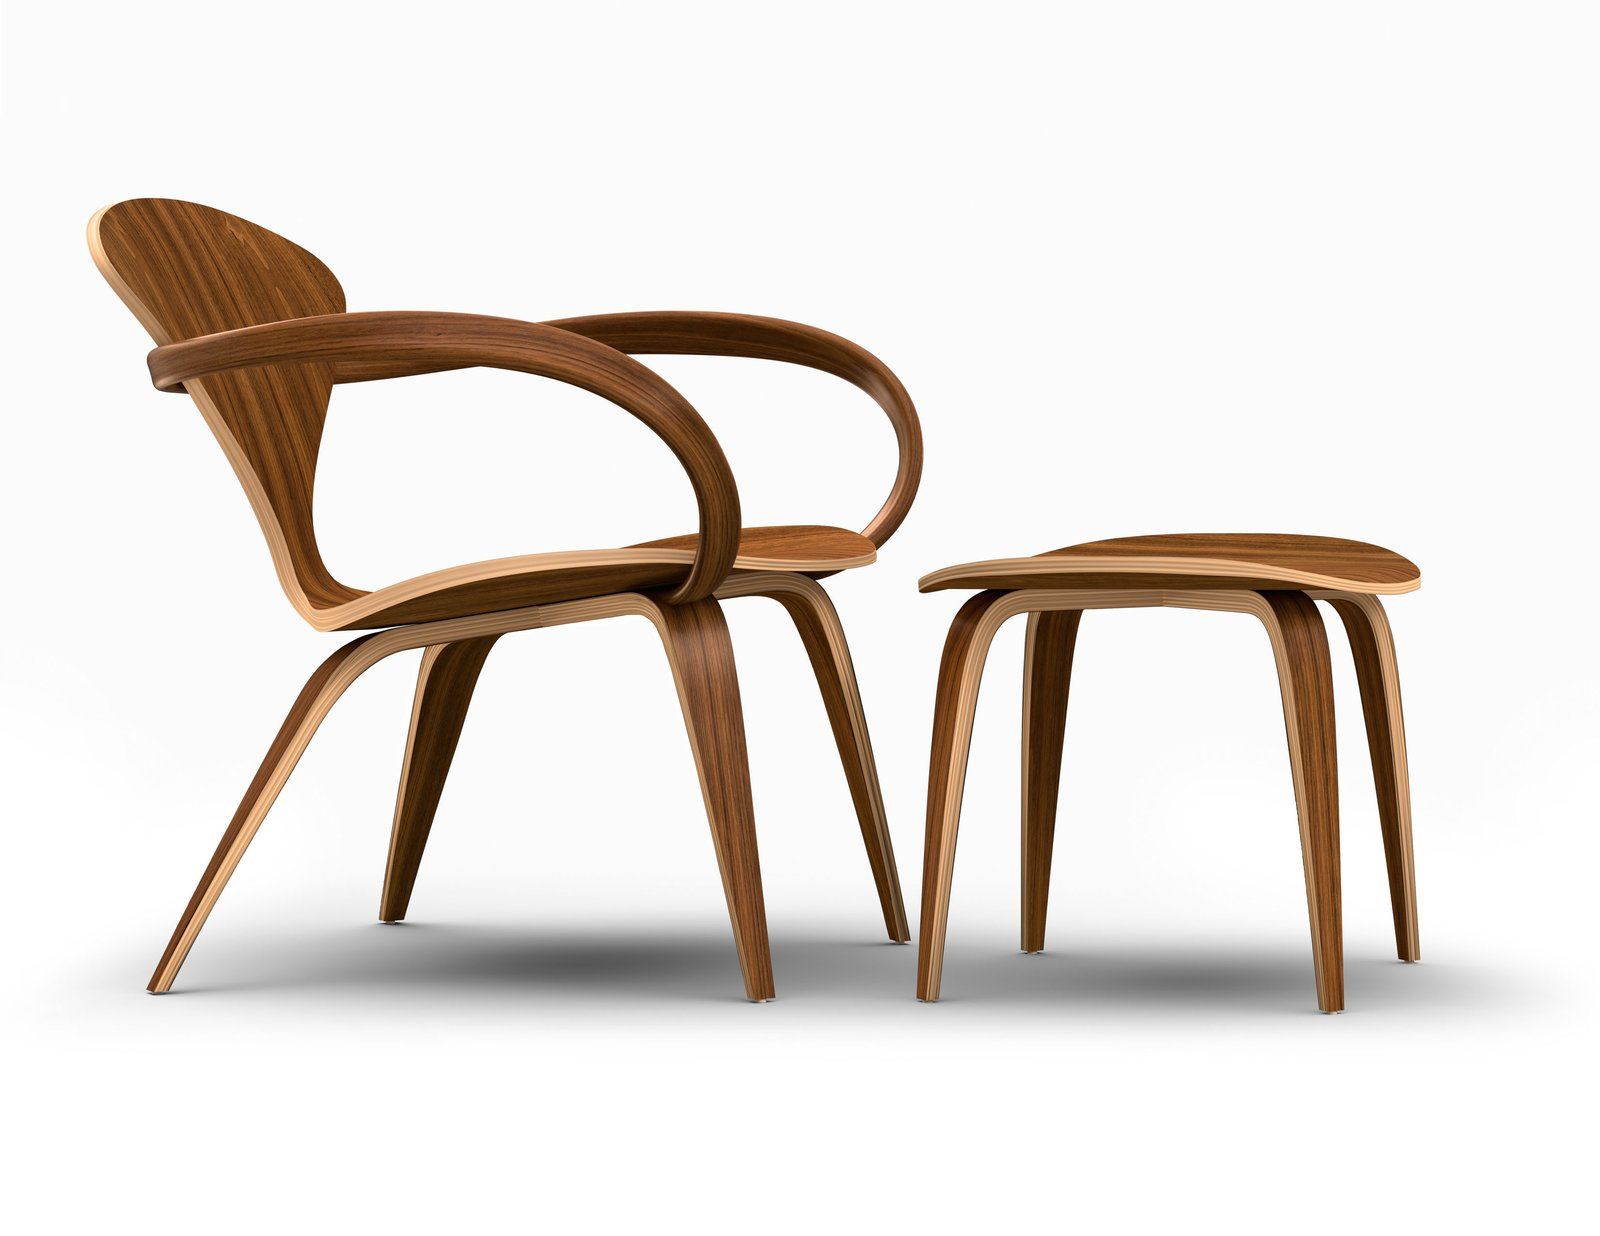 The side view of the Cherner Lounge Arm Chair and Ottoman showcases the sinuous curvature of the molded plywood. This design recalls the look of the original chair designed by Norman Cherner in 1958.